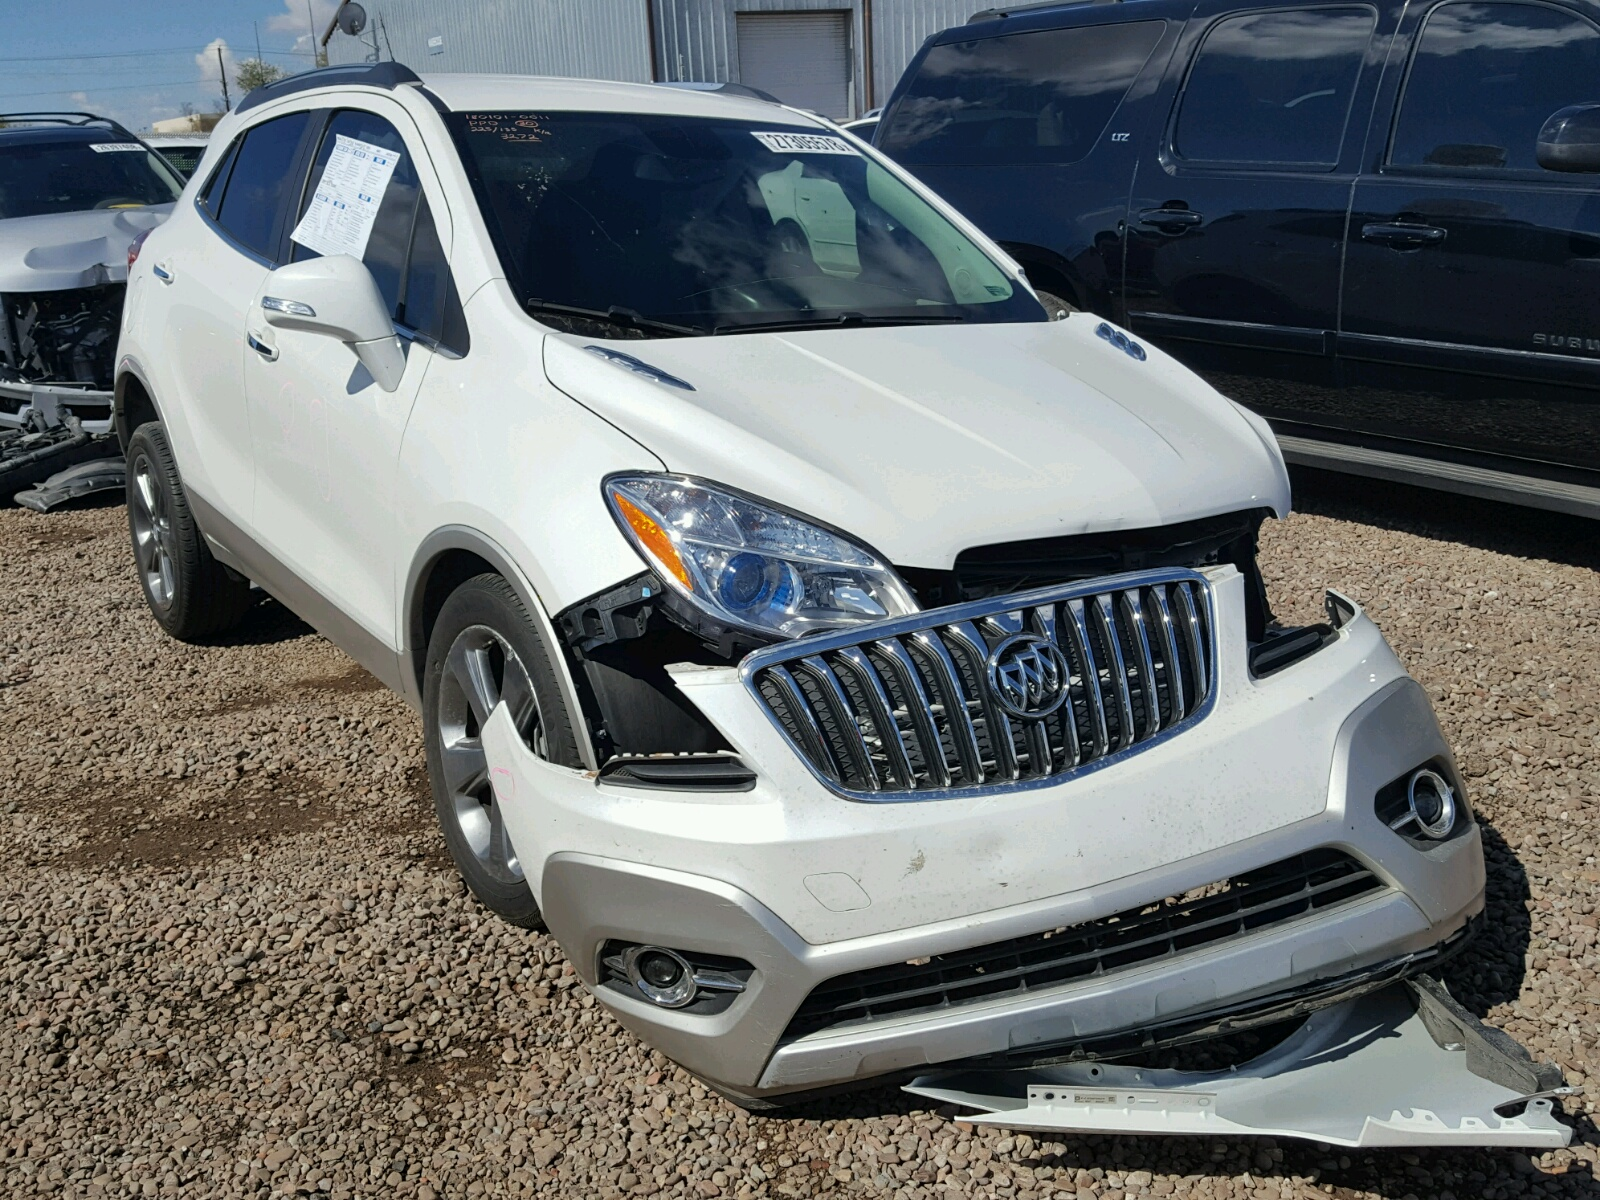 east online ga salvage auctions white carfinder buick in copart en view on title encore sale of cert atlanta auto for left lot